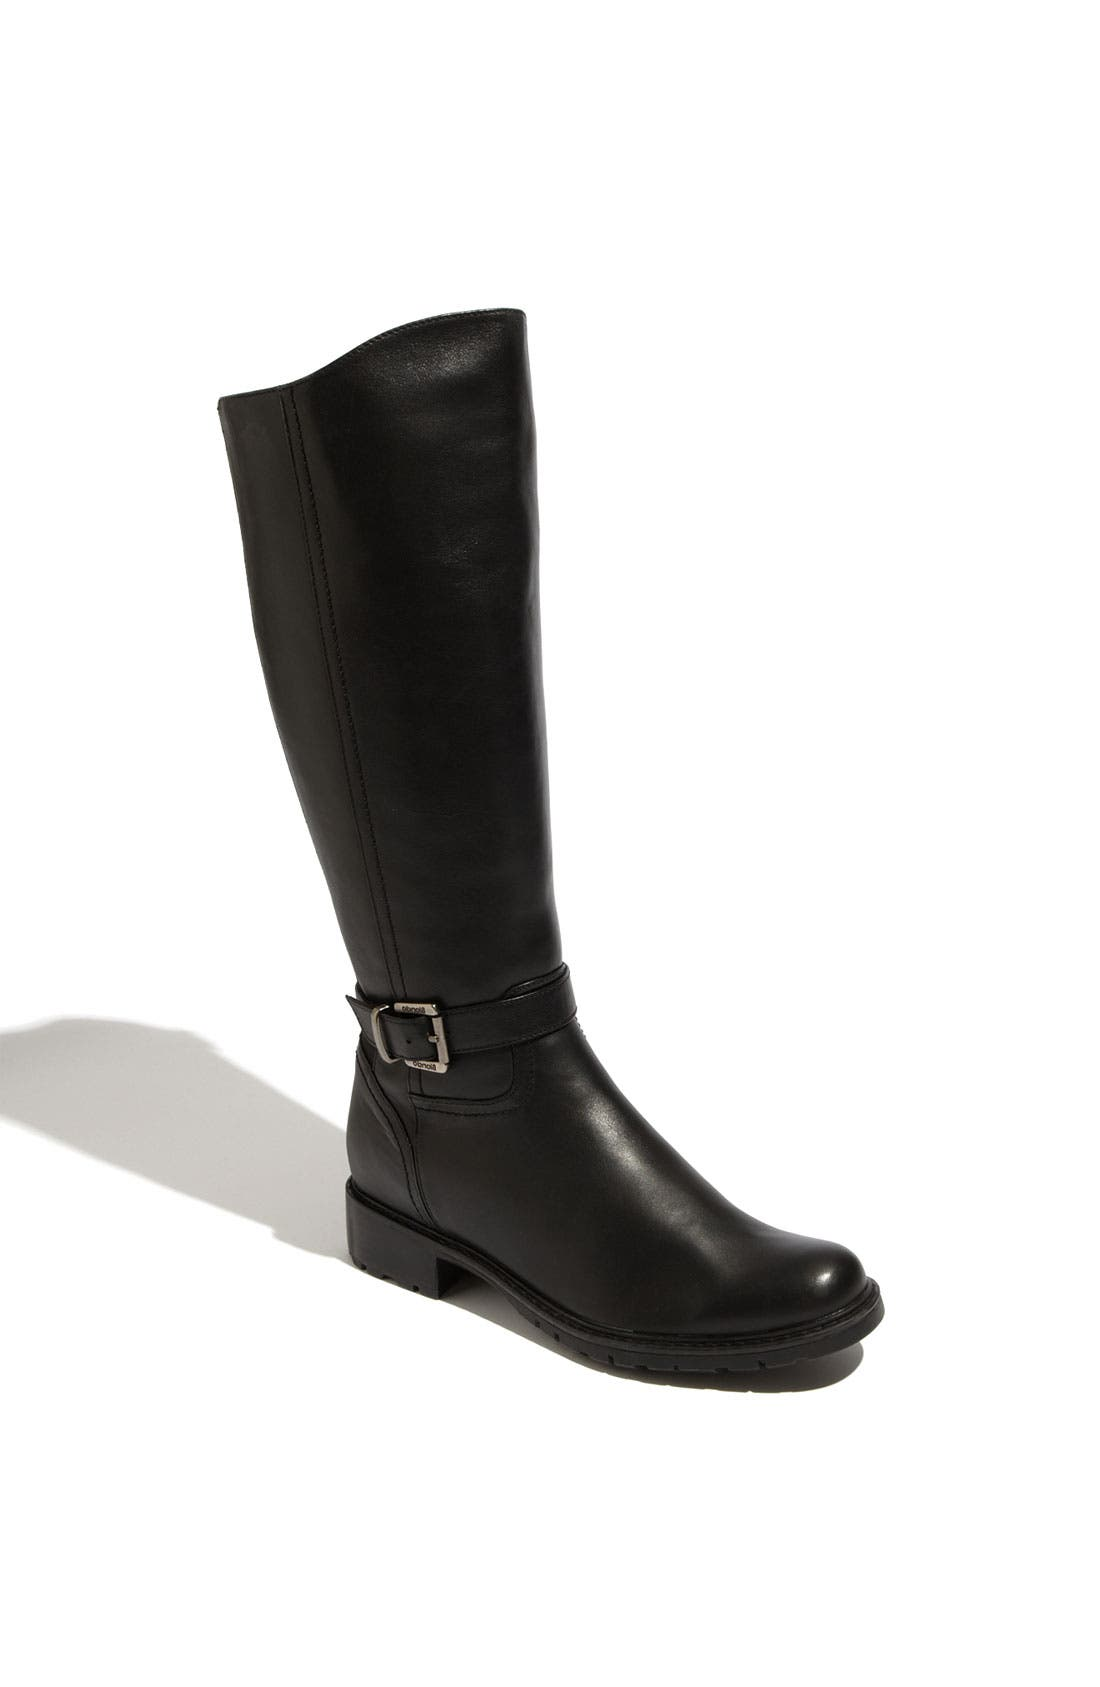 Alternate Image 1 Selected - Blondo 'Viviane' Waterproof Boot (Wide Calf)